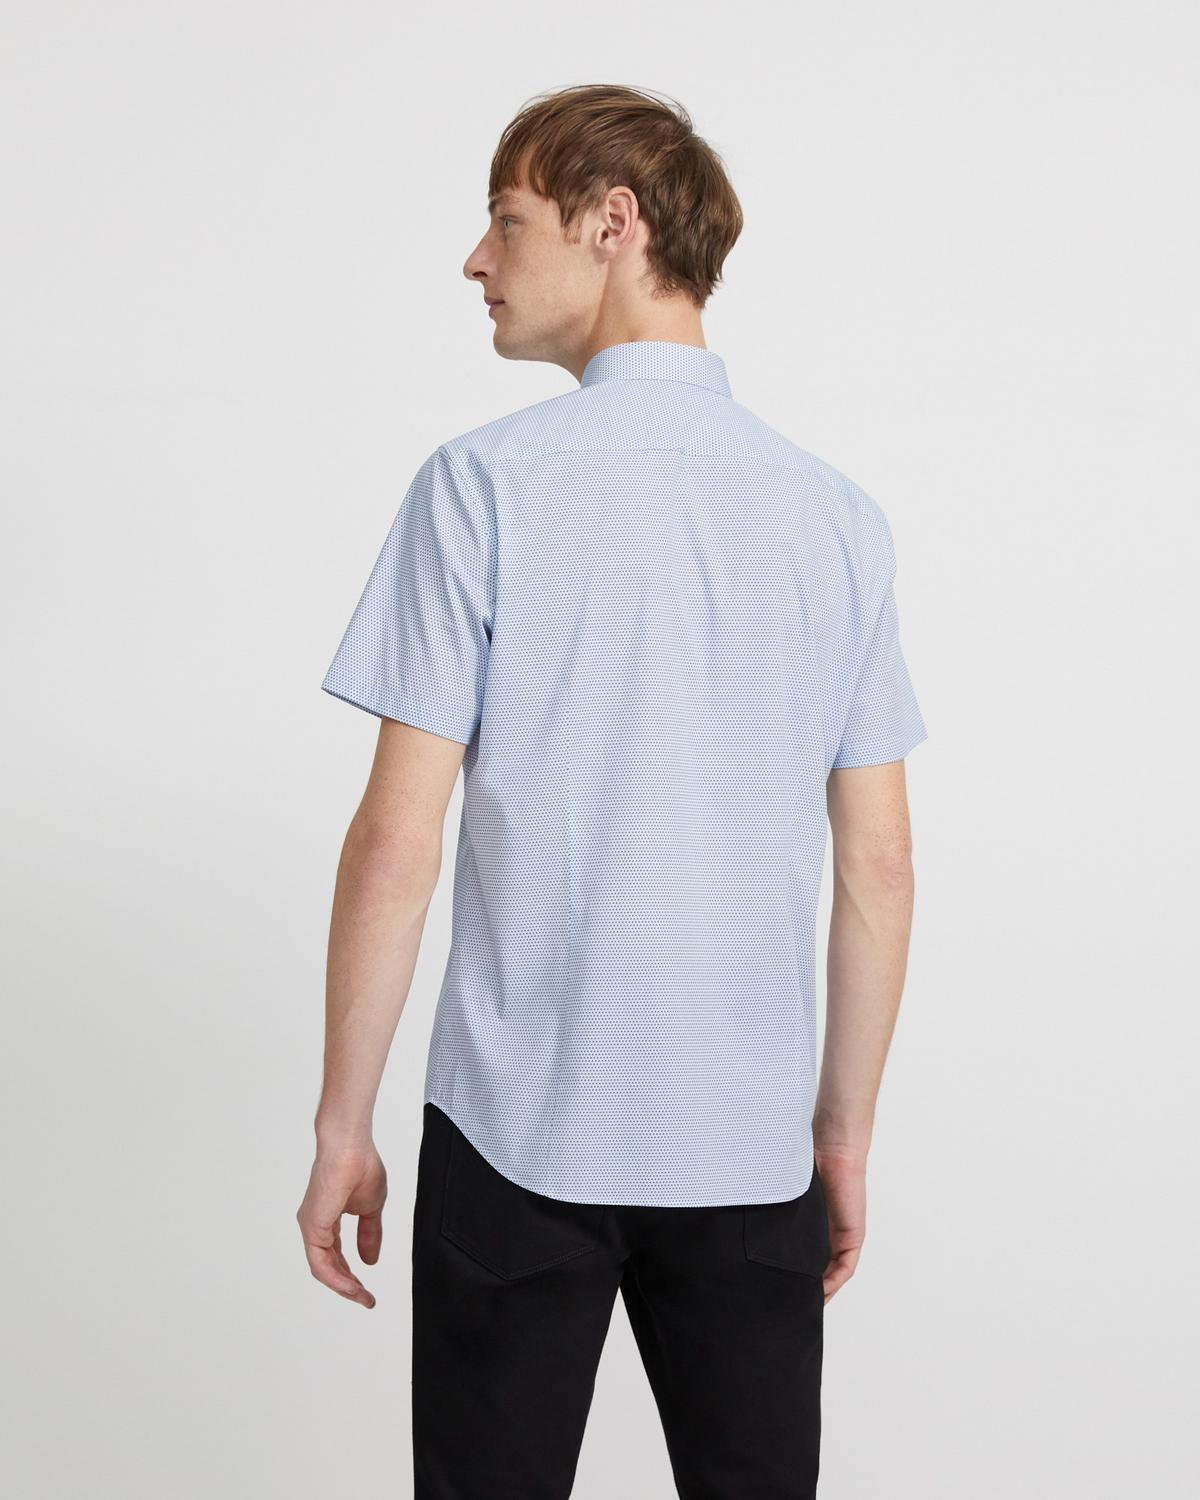 Sylvain Short-Sleeve Shirt in Printed Stretch Cotton